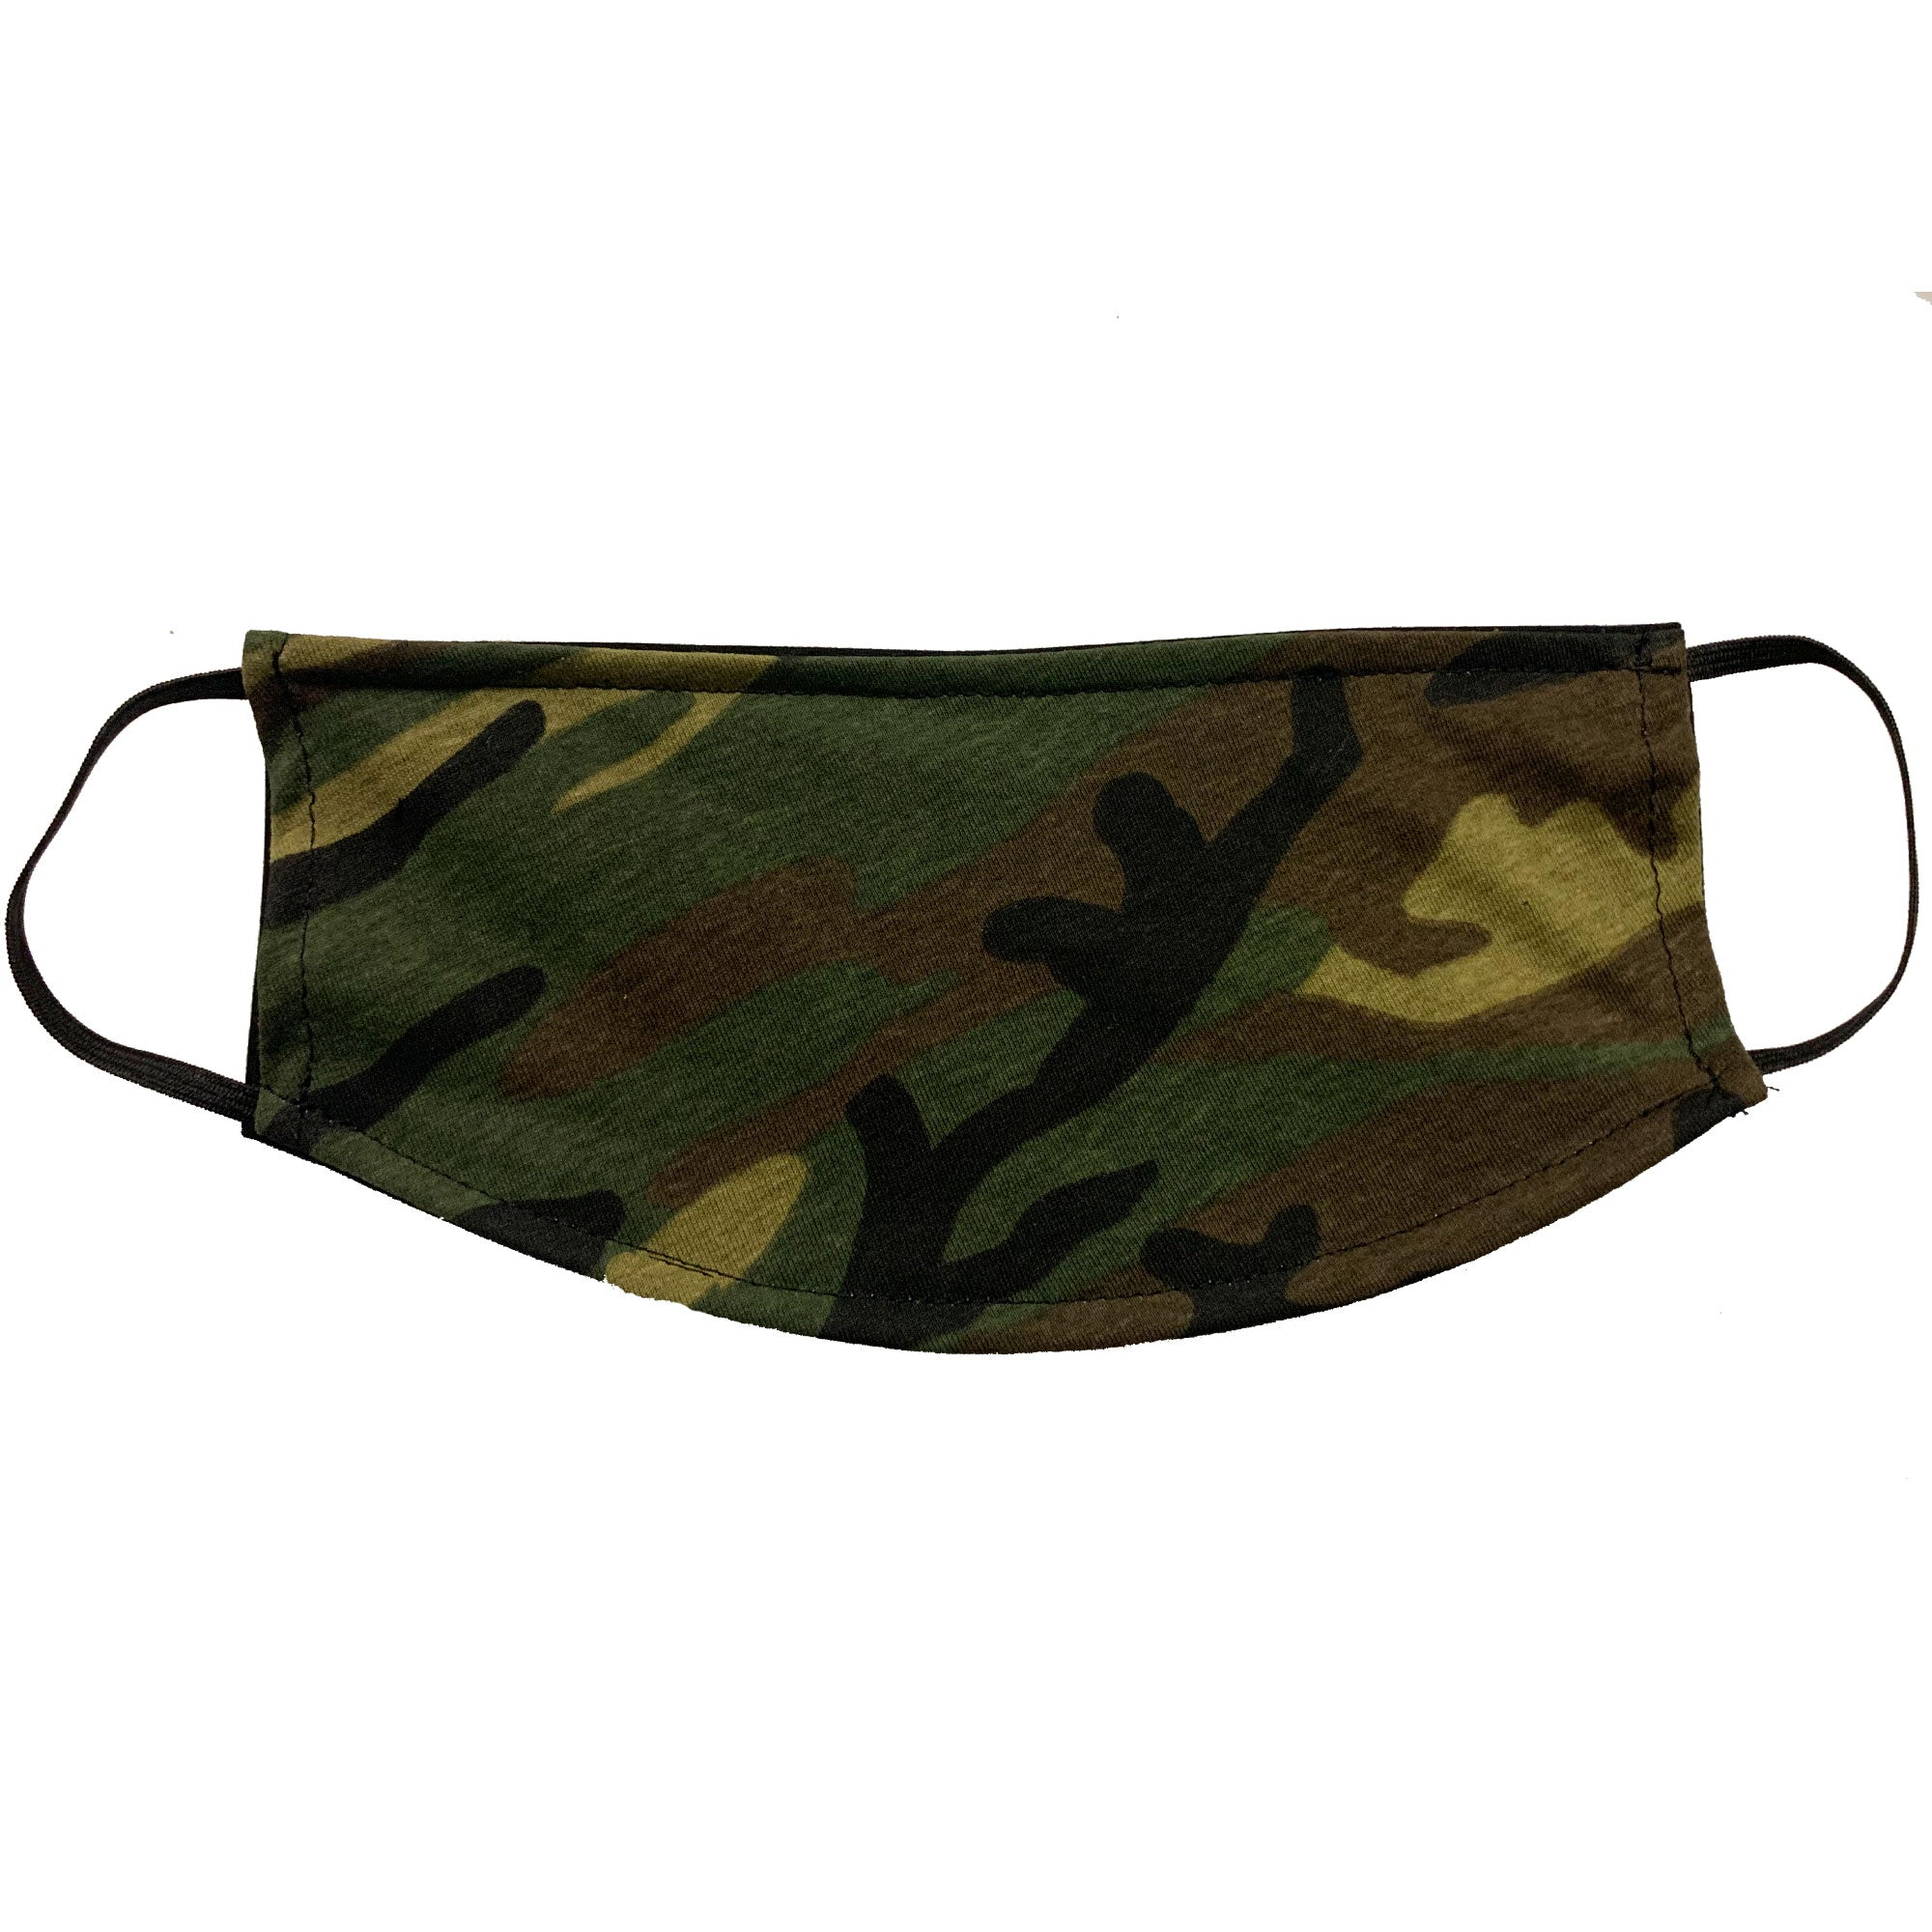 Adult Face Mask - Military Camo Design